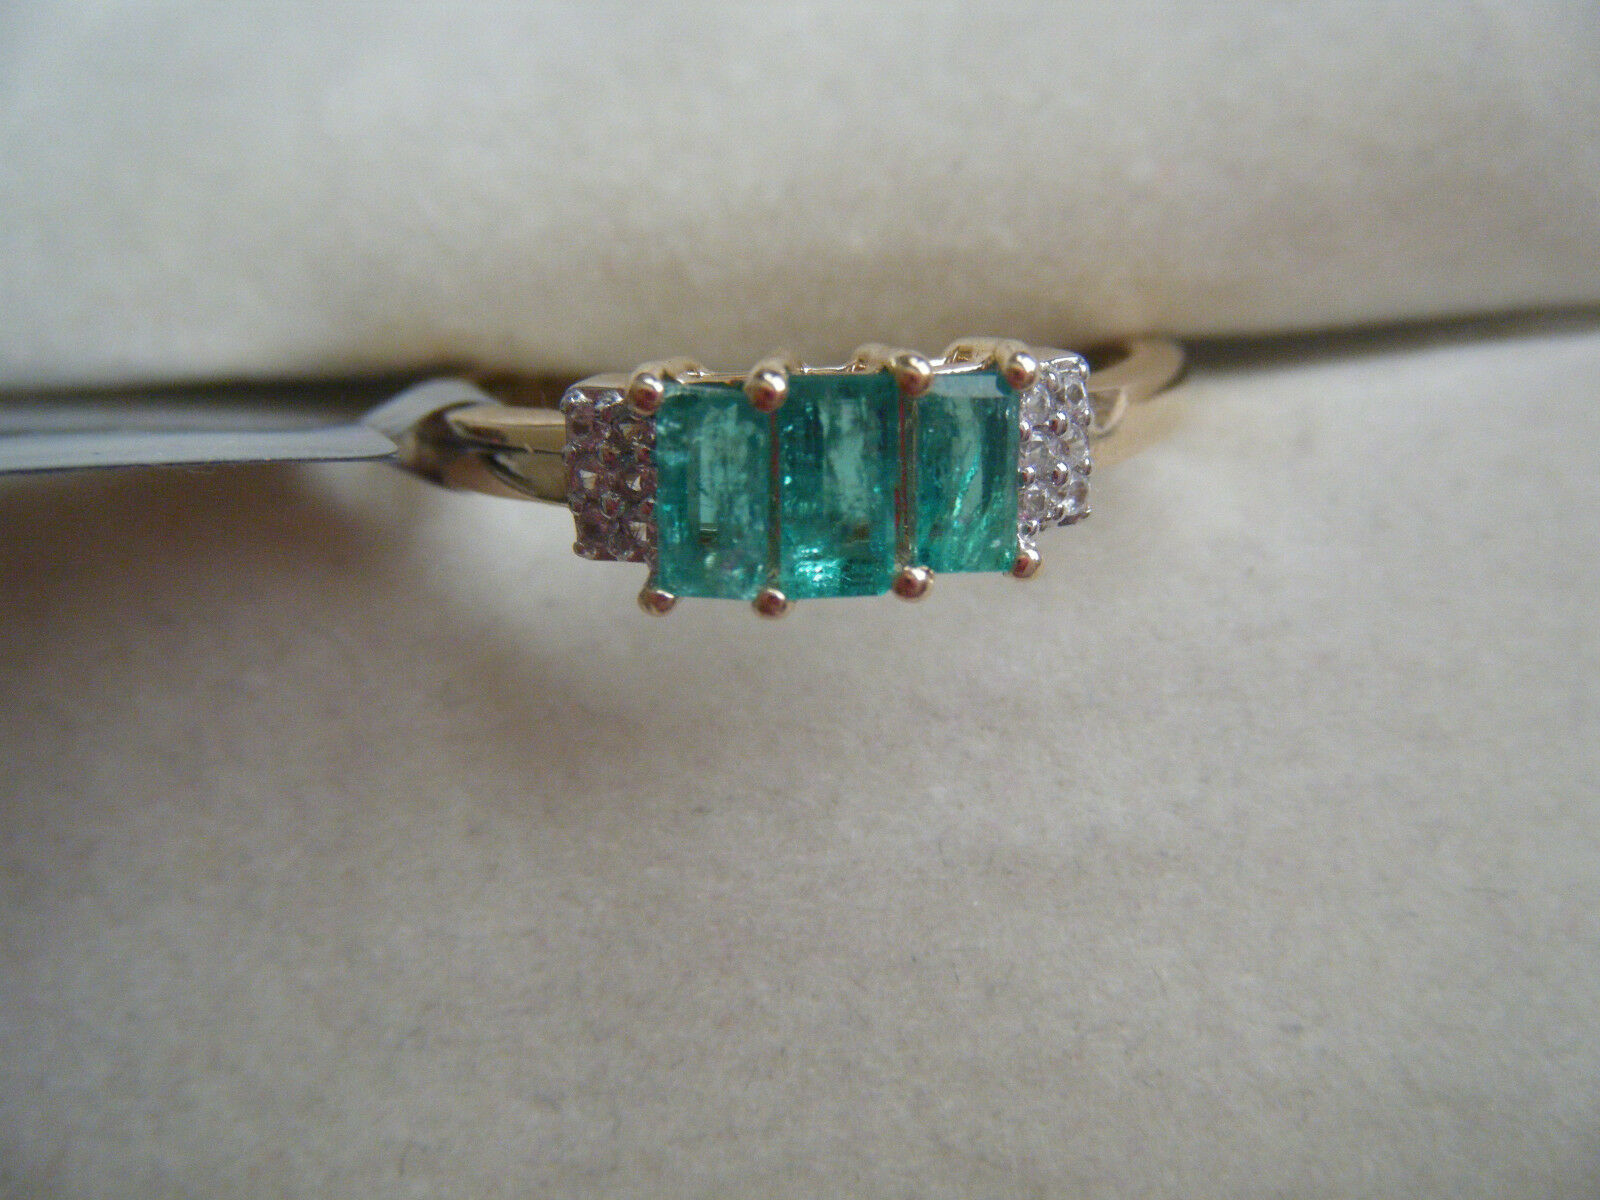 THREE STONE COLOMBIAN EMERALD AND WHITE ZIRCON 10 KT YELLOW gold RING 0.64 CTW